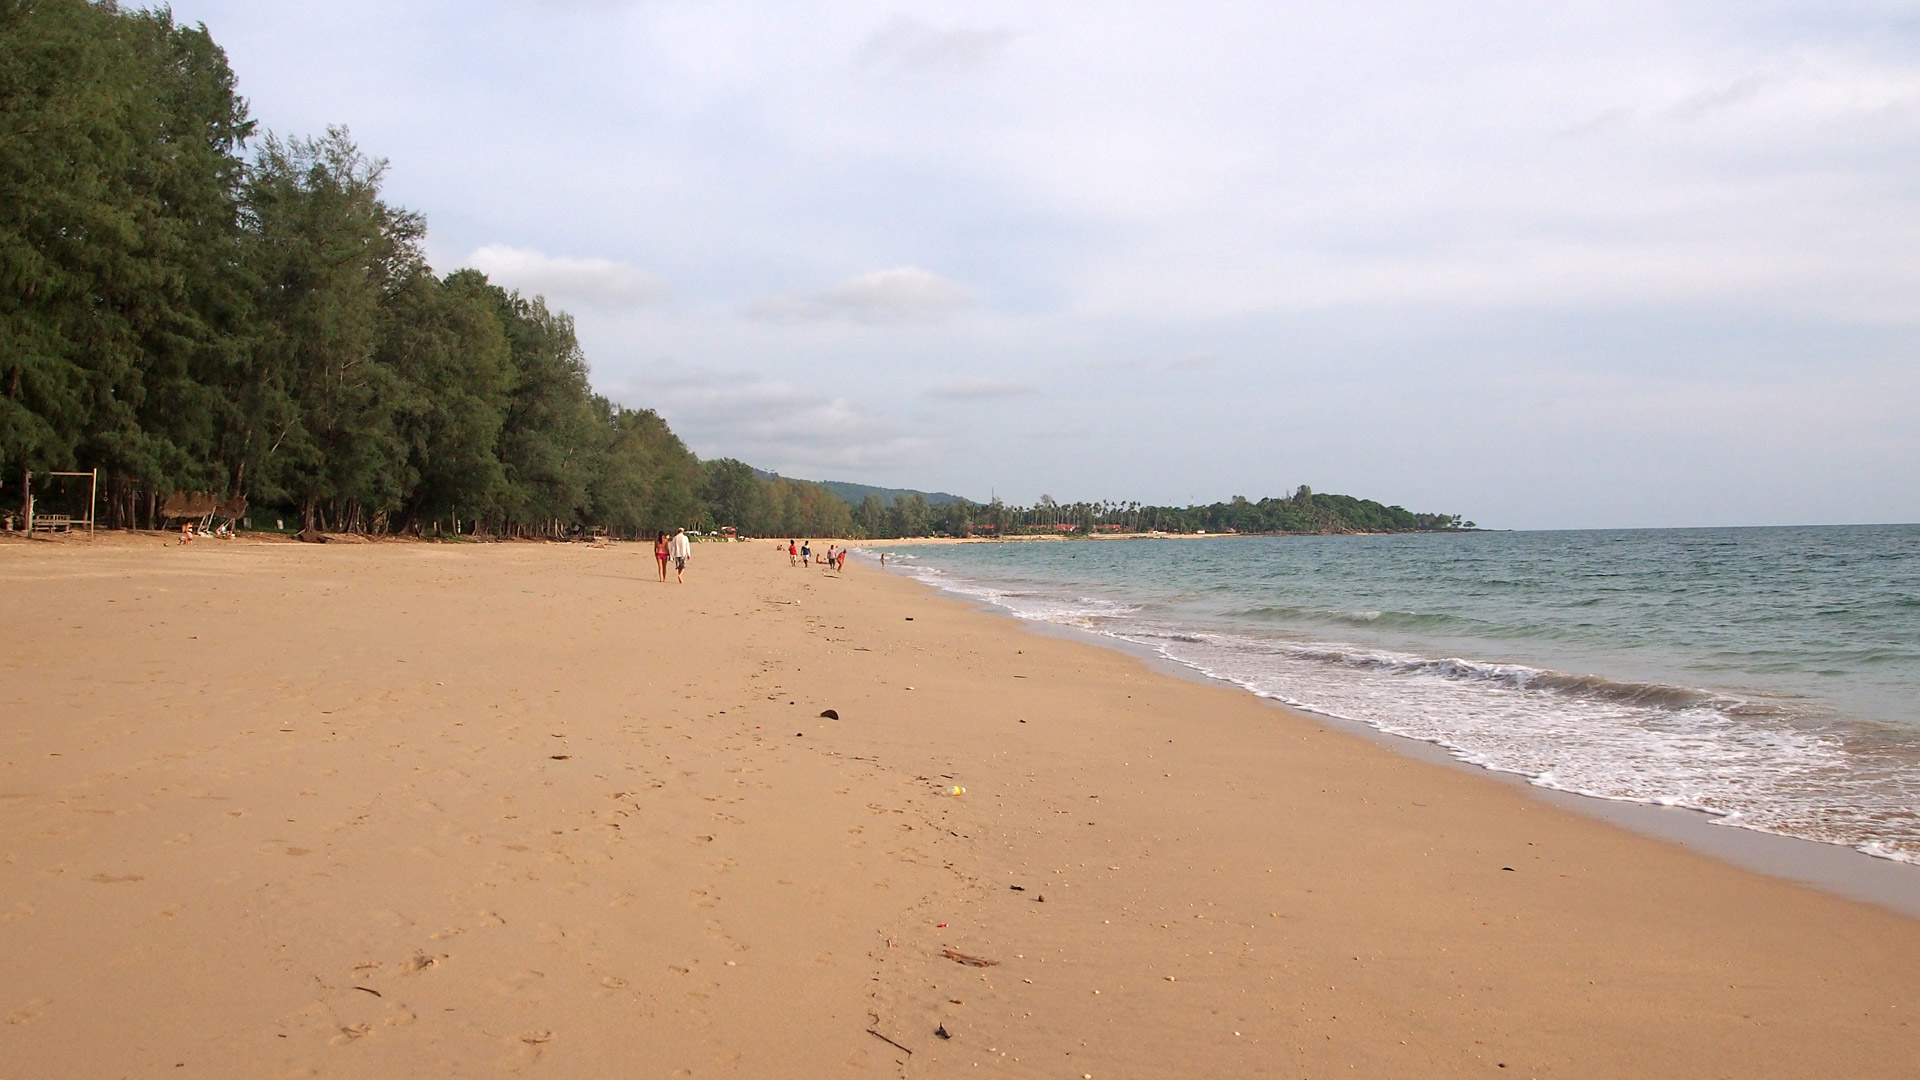 Koh Lanta Beach Guide The 6 Most Beautiful Beaches Travel Blog About Southeast Asia Home Is